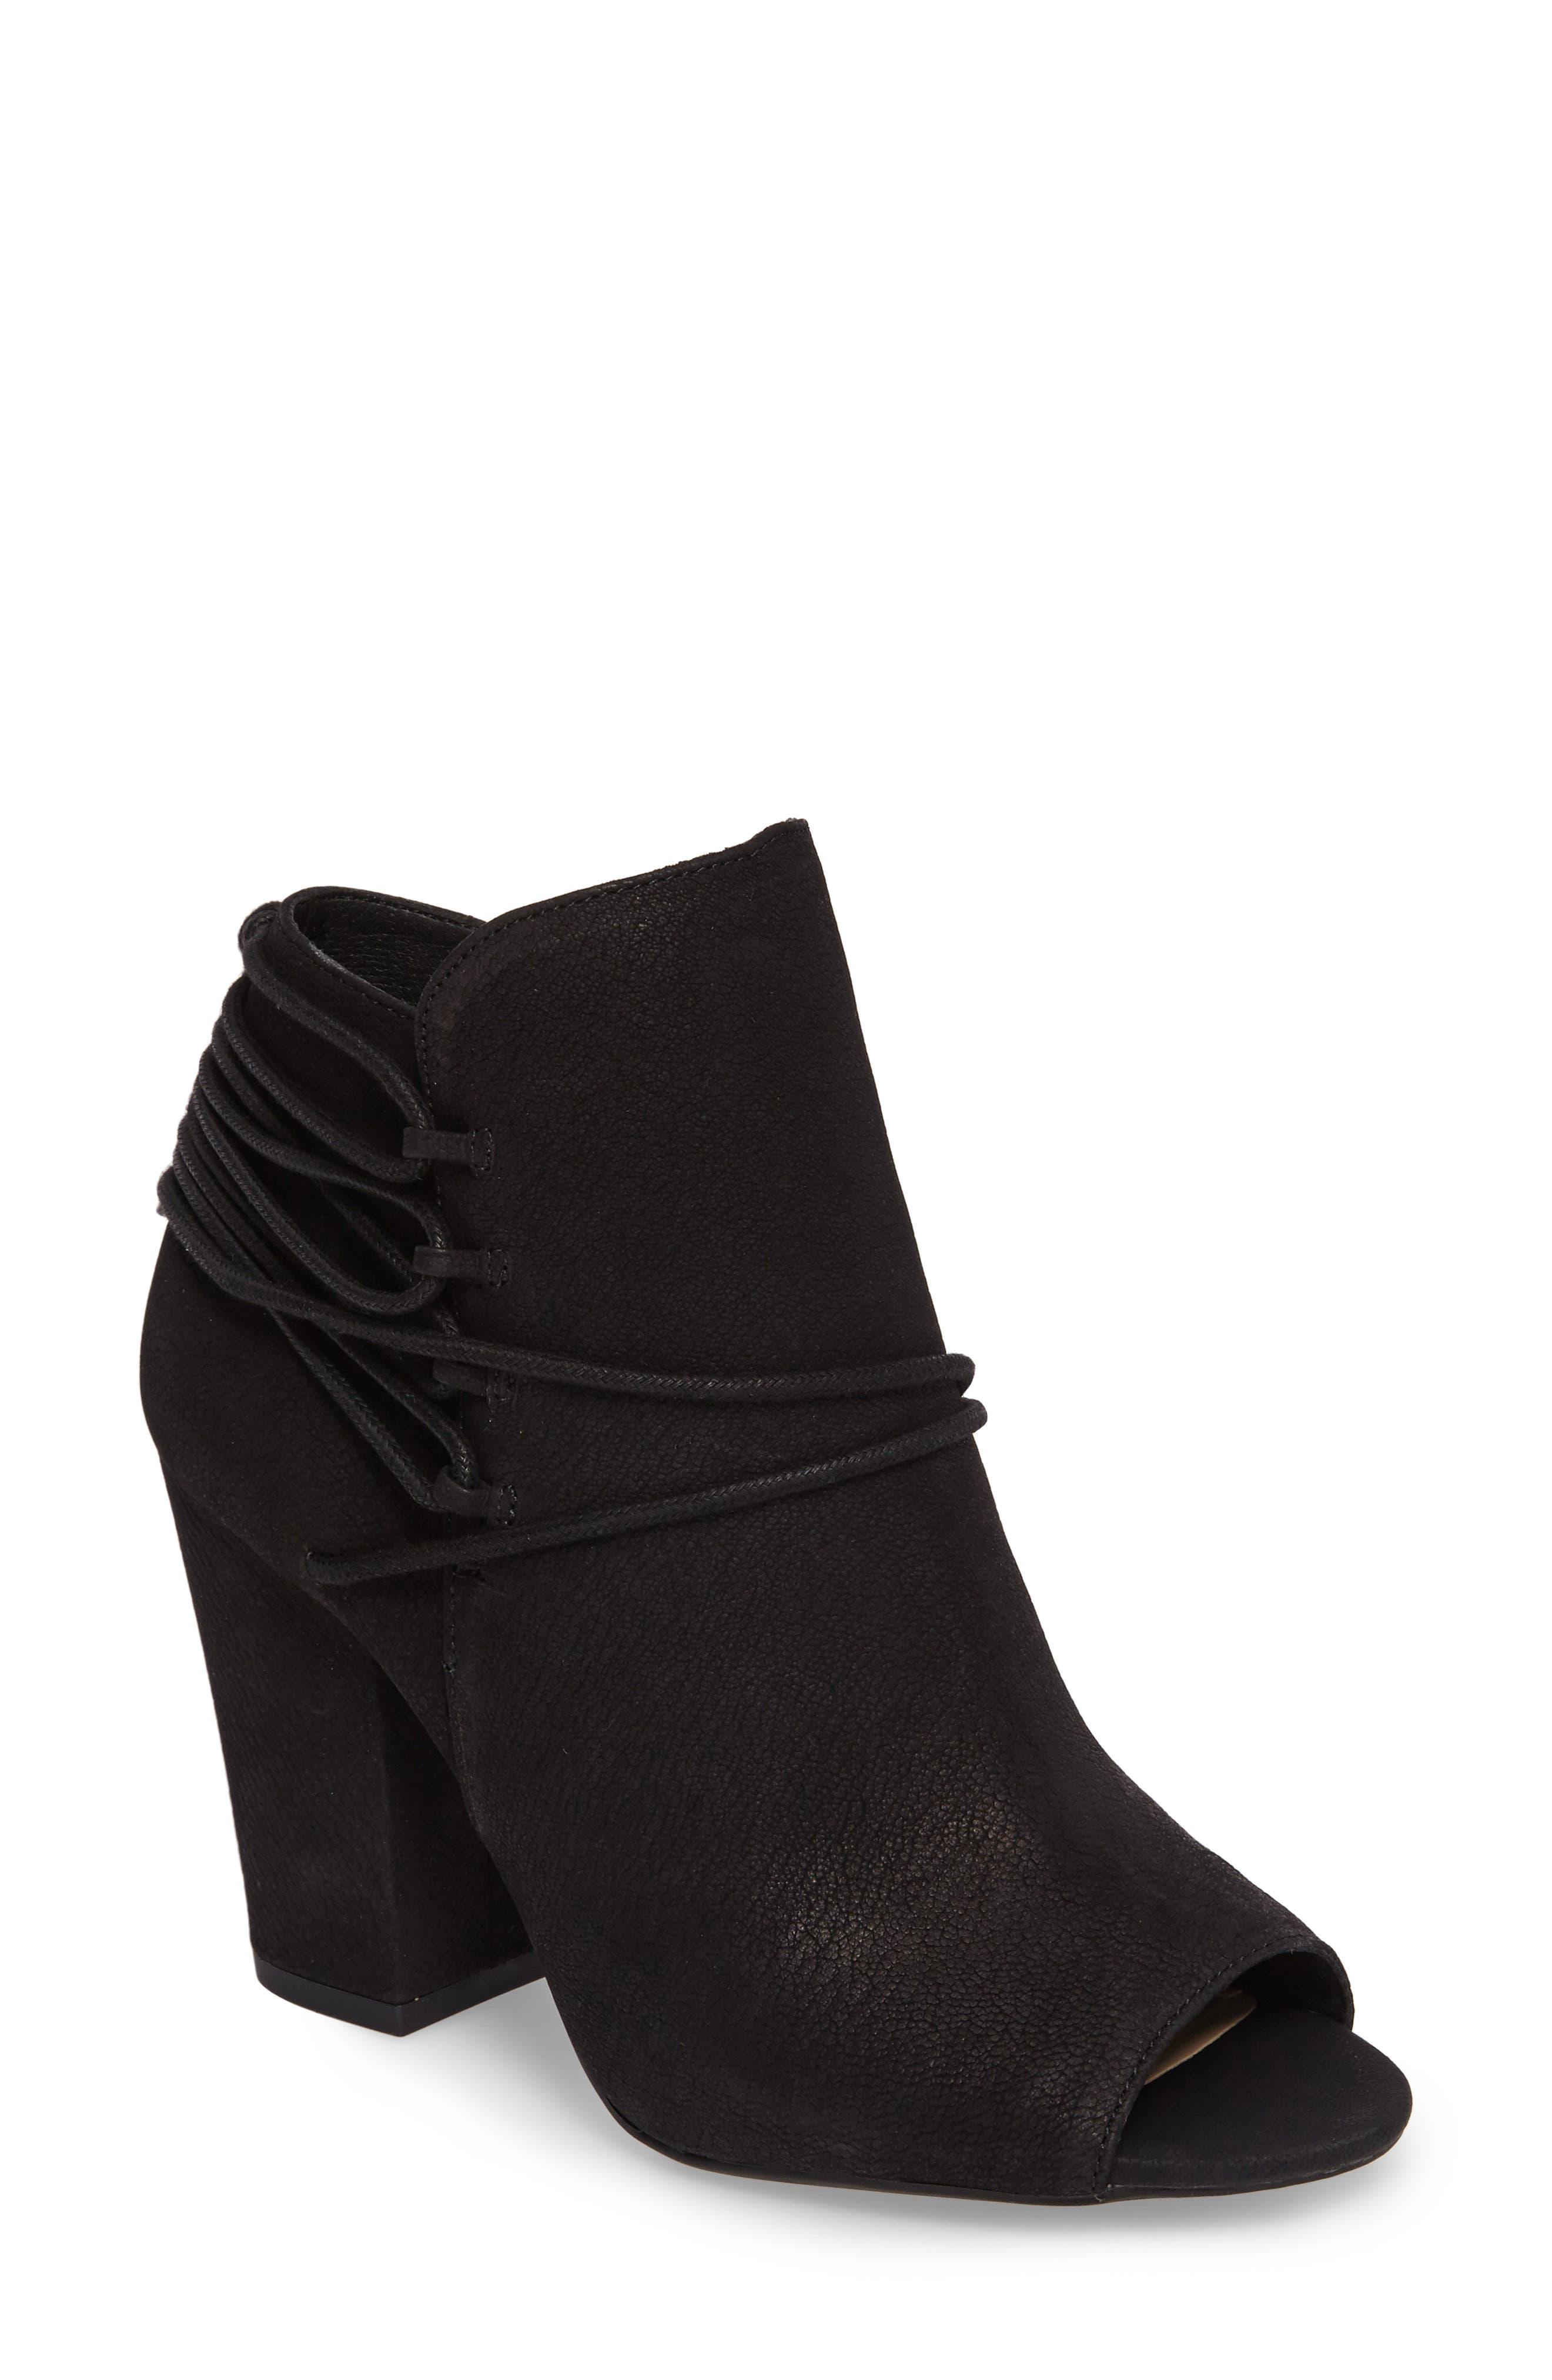 Remni Peep Toe Bootie,                         Main,                         color, 001